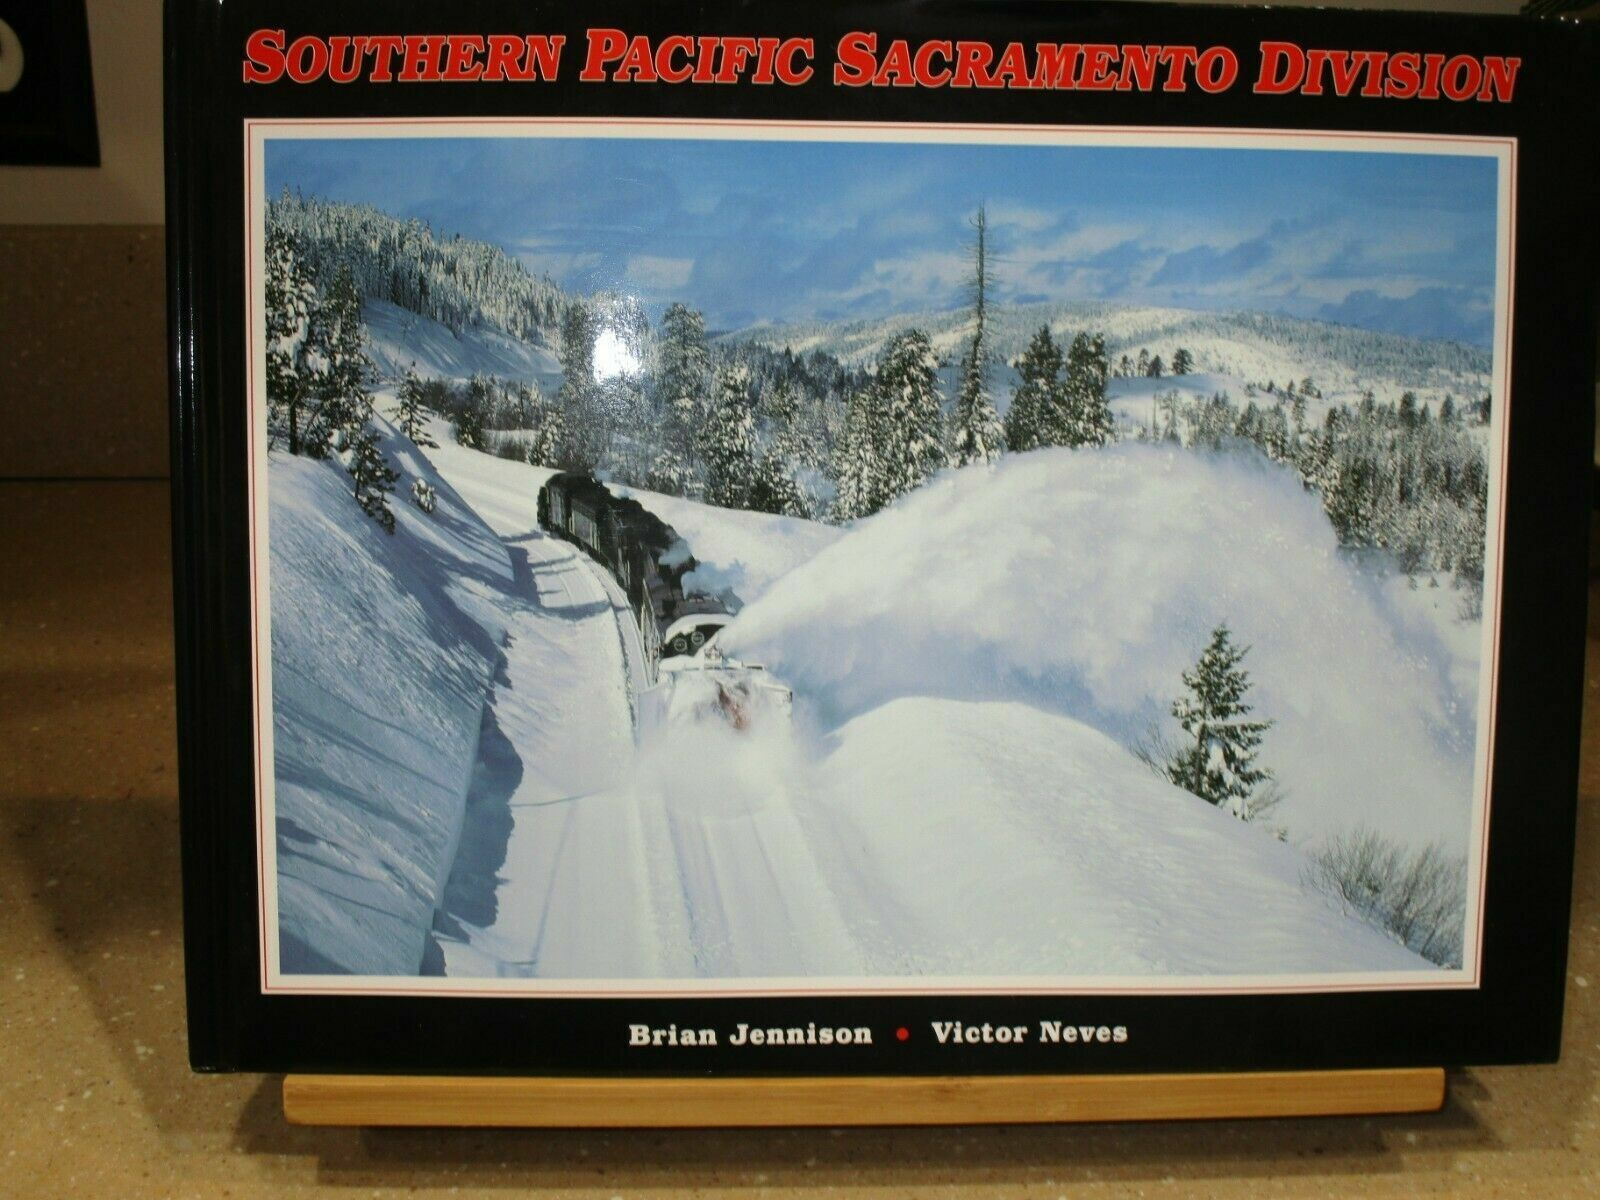 SOUTHERN PACIFIC SACRAMENTO DIVISION, RAILROAD, RARE BOOK, NEW, train locomotive